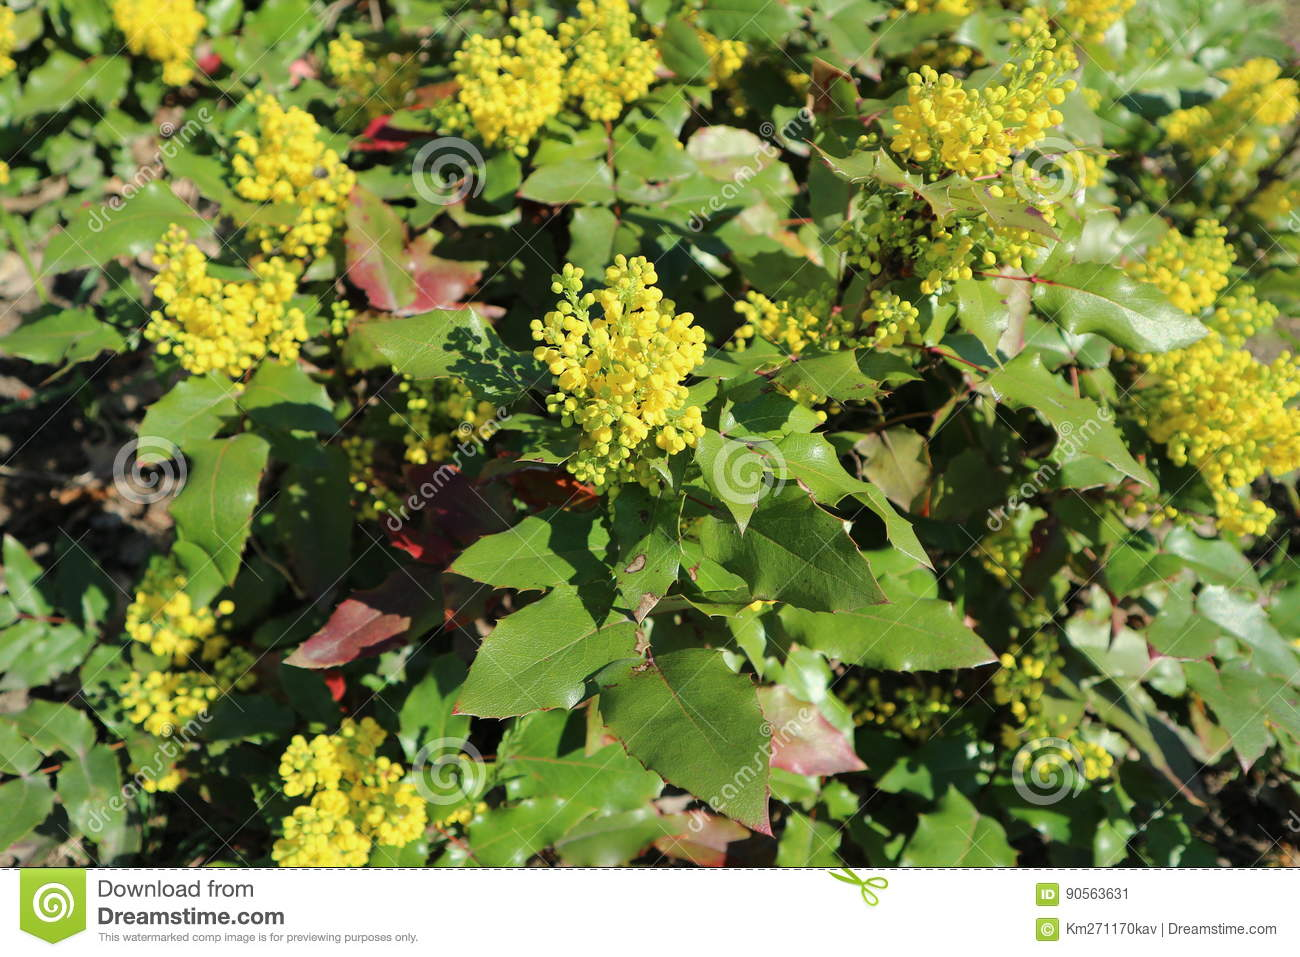 Mahonia aquifolium green leaves and yellow flowers stock image download mahonia aquifolium green leaves and yellow flowers stock image image of leaves ngarden mightylinksfo